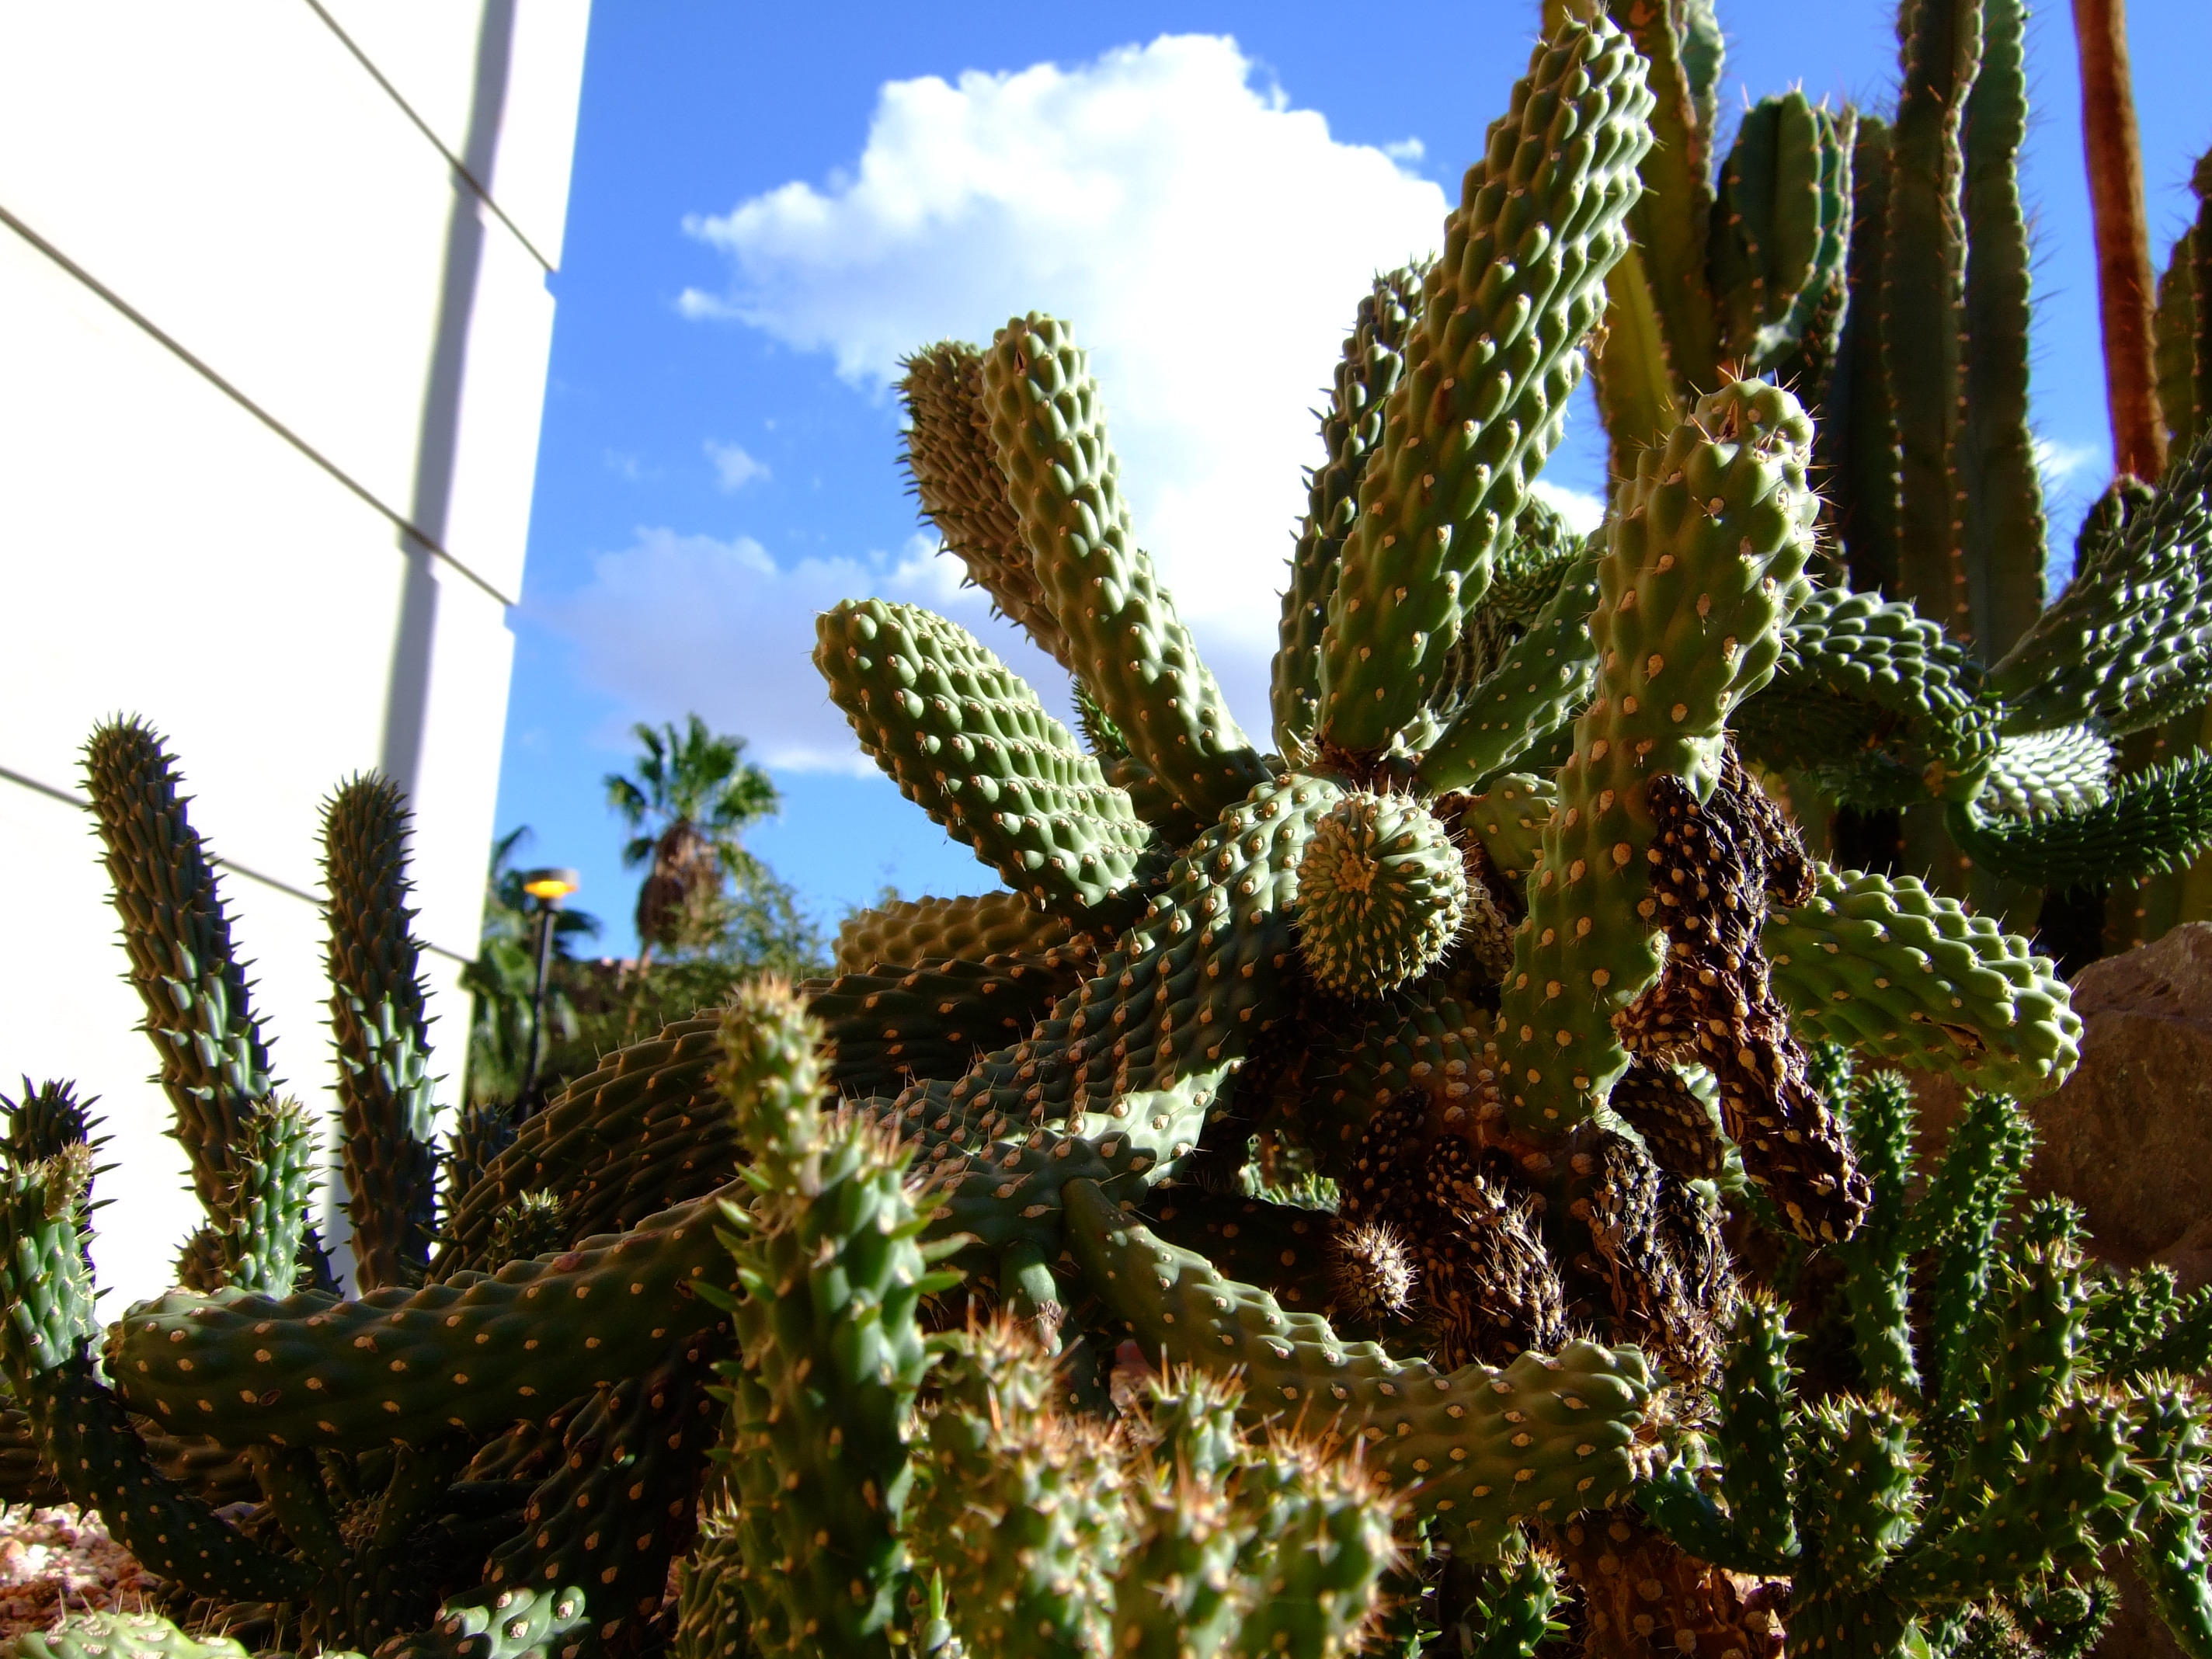 Cactus 6 by Spiteful-Pie-Stock